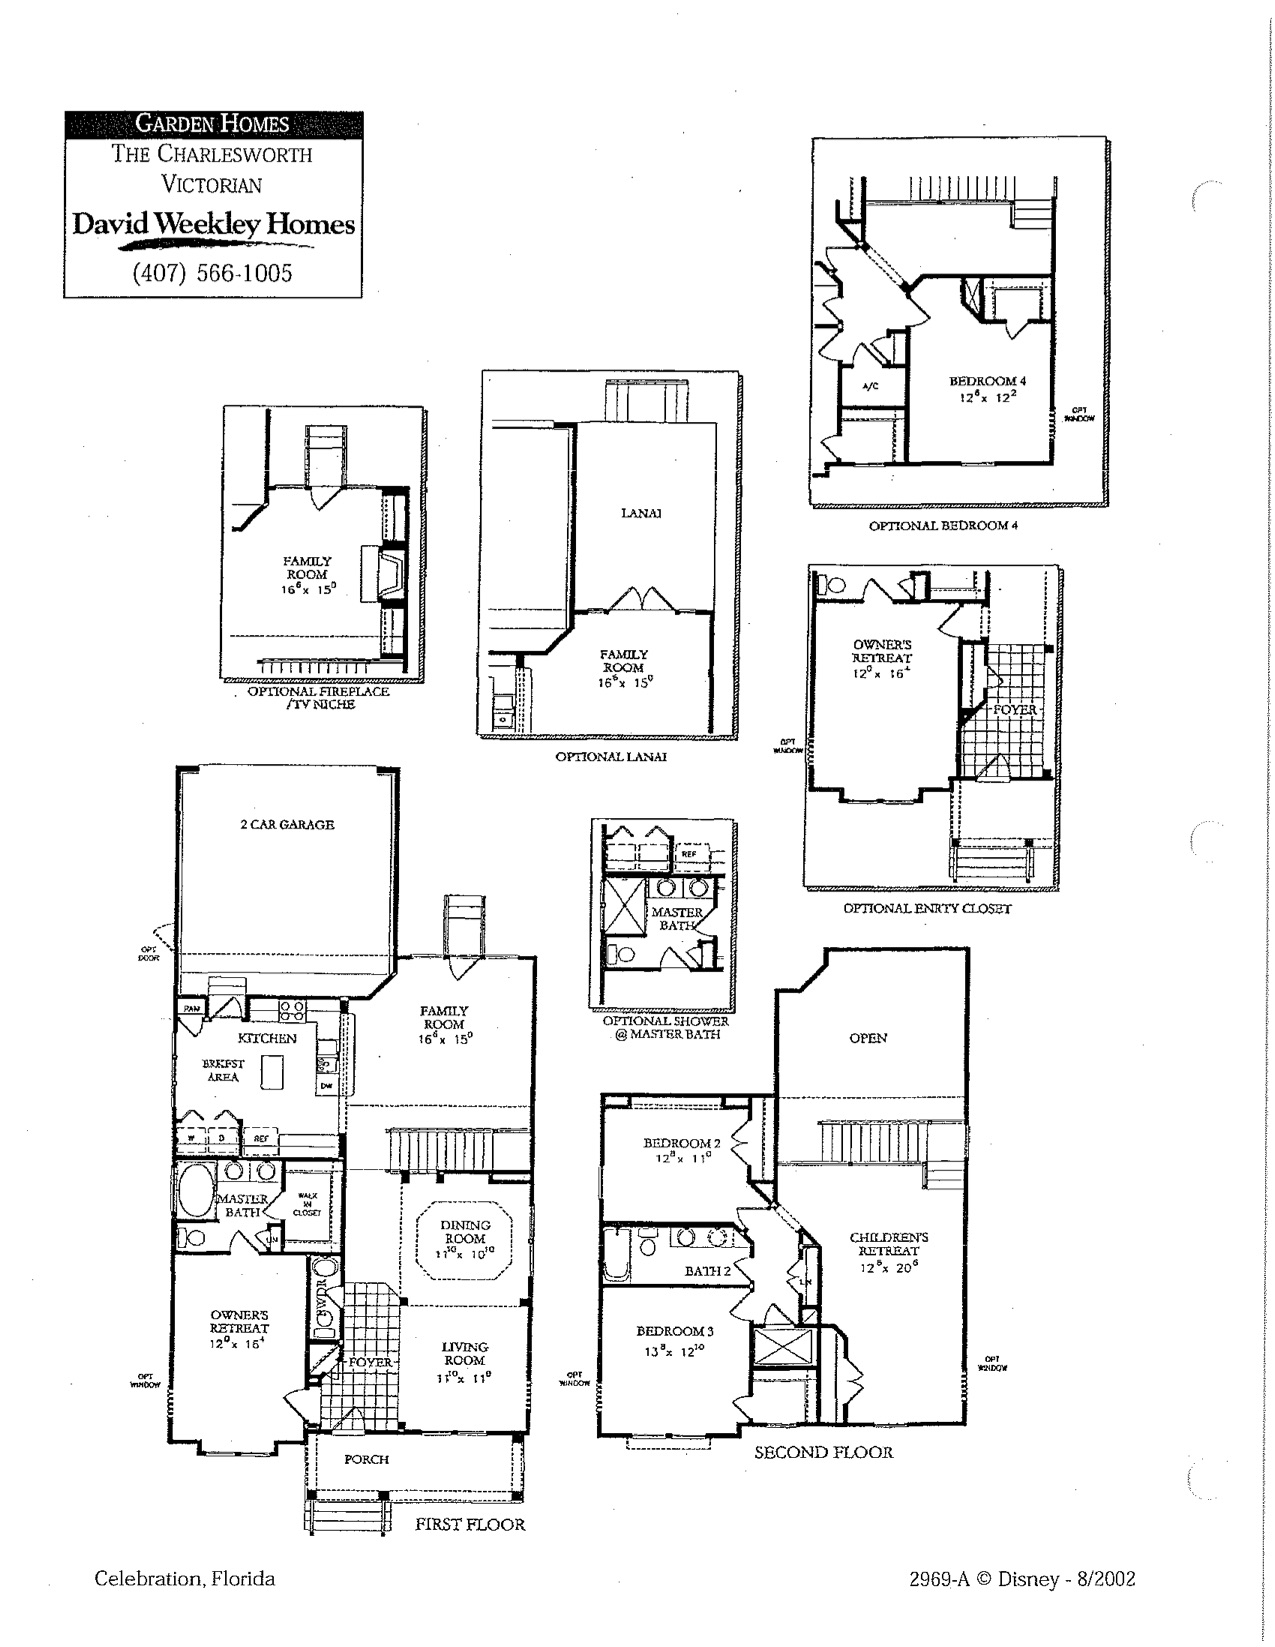 charles worth floorplan